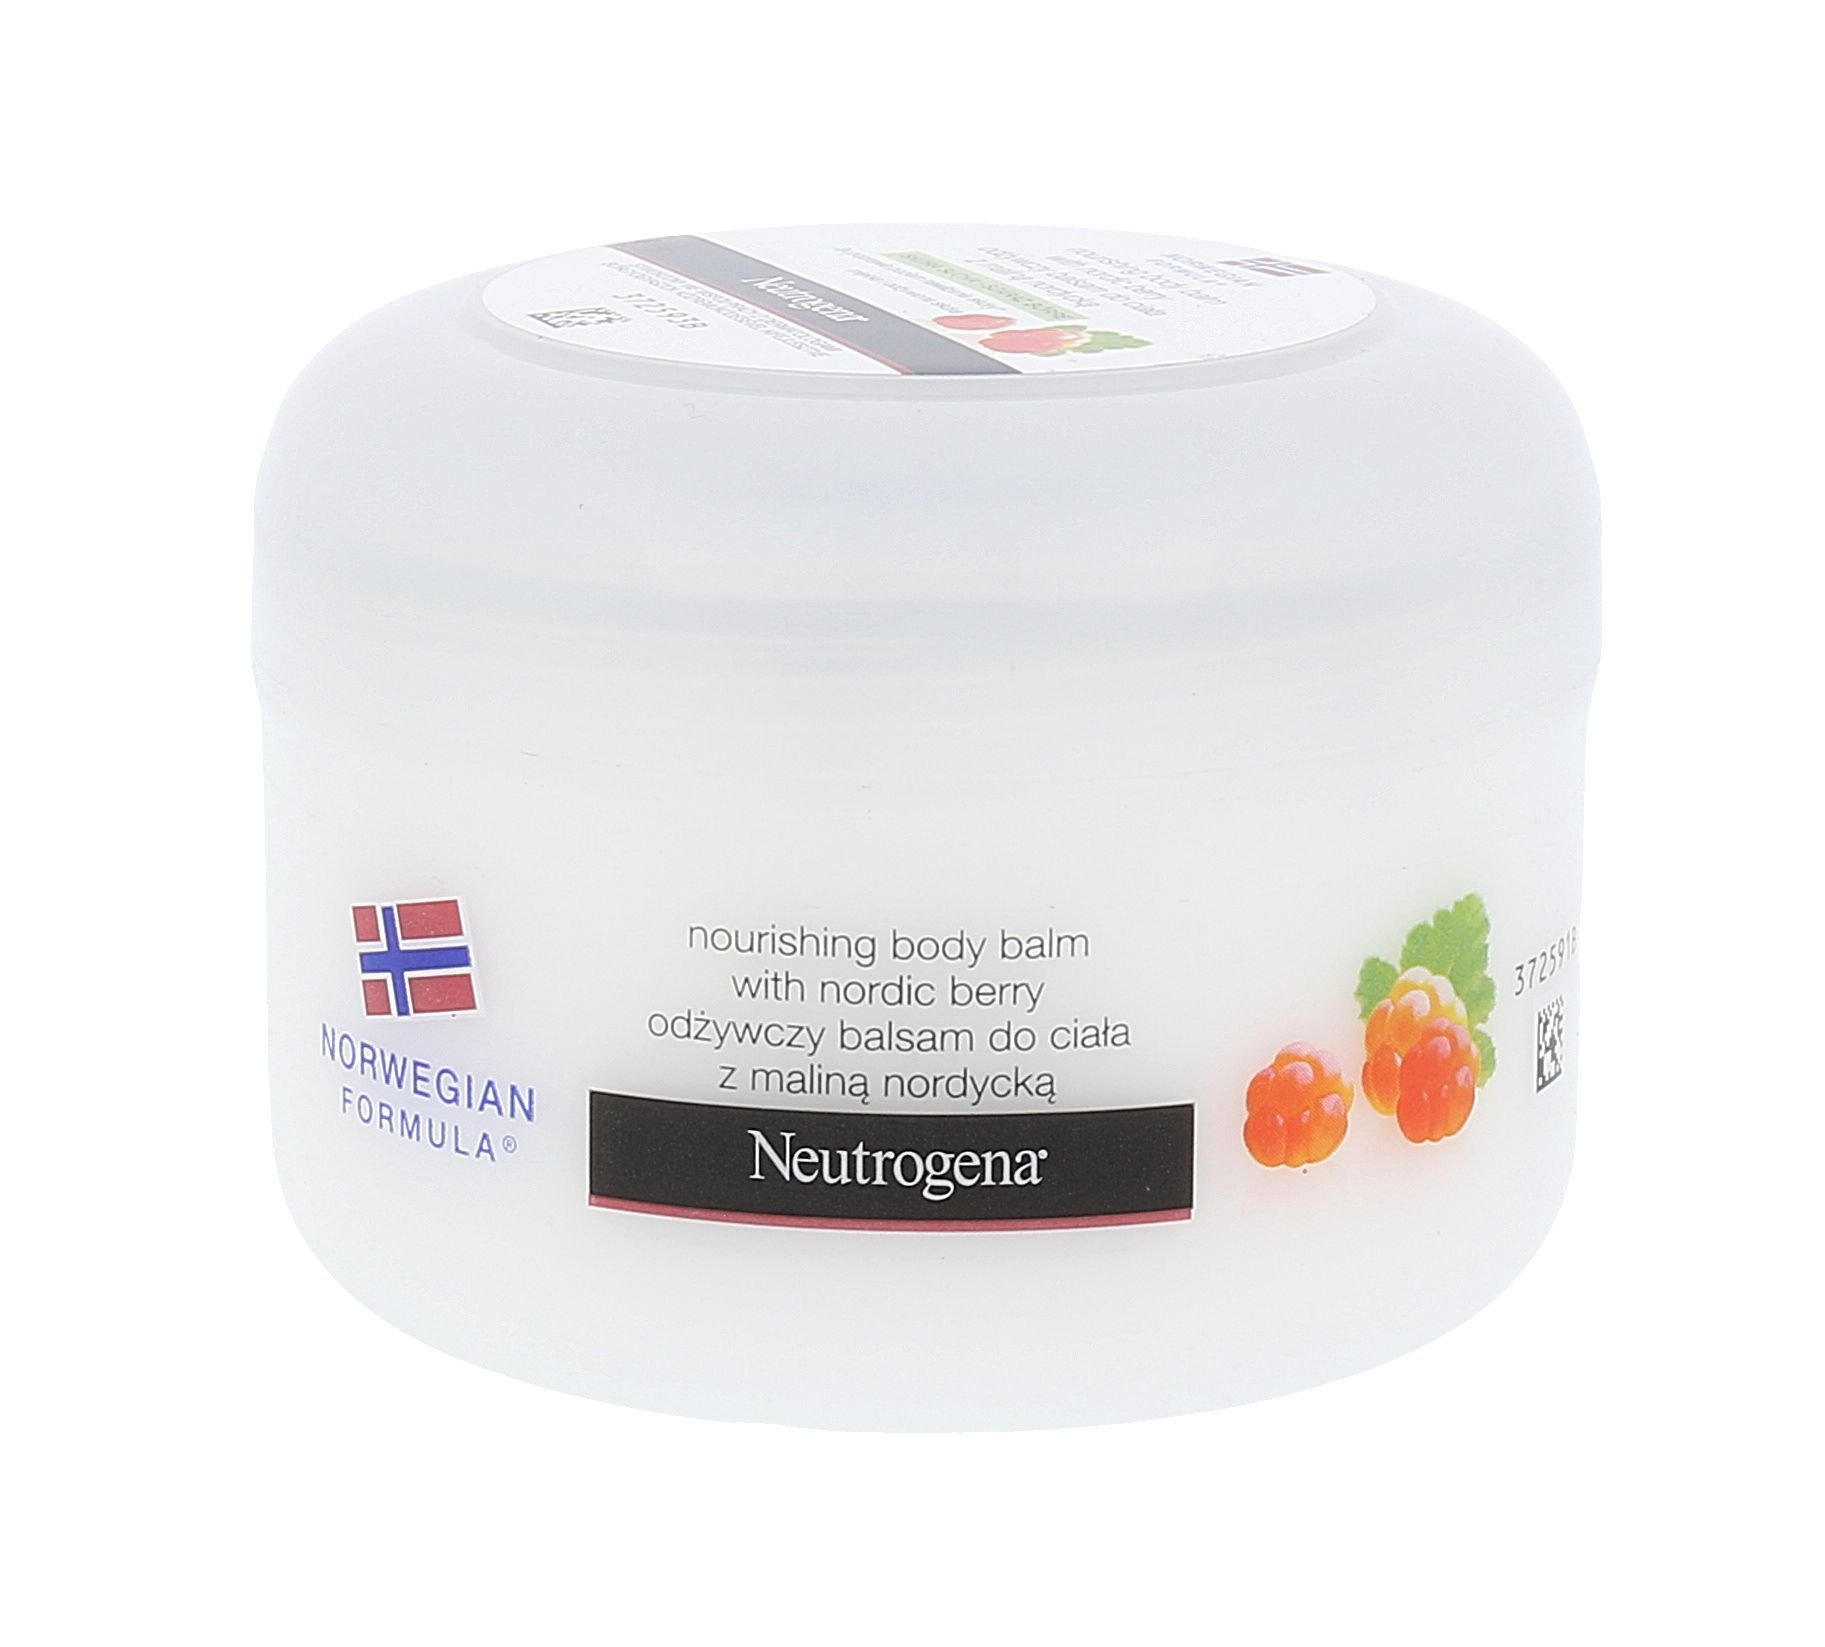 Neutrogena Nourishing Body Balm With Nordic Berry Cosmetic 200ml